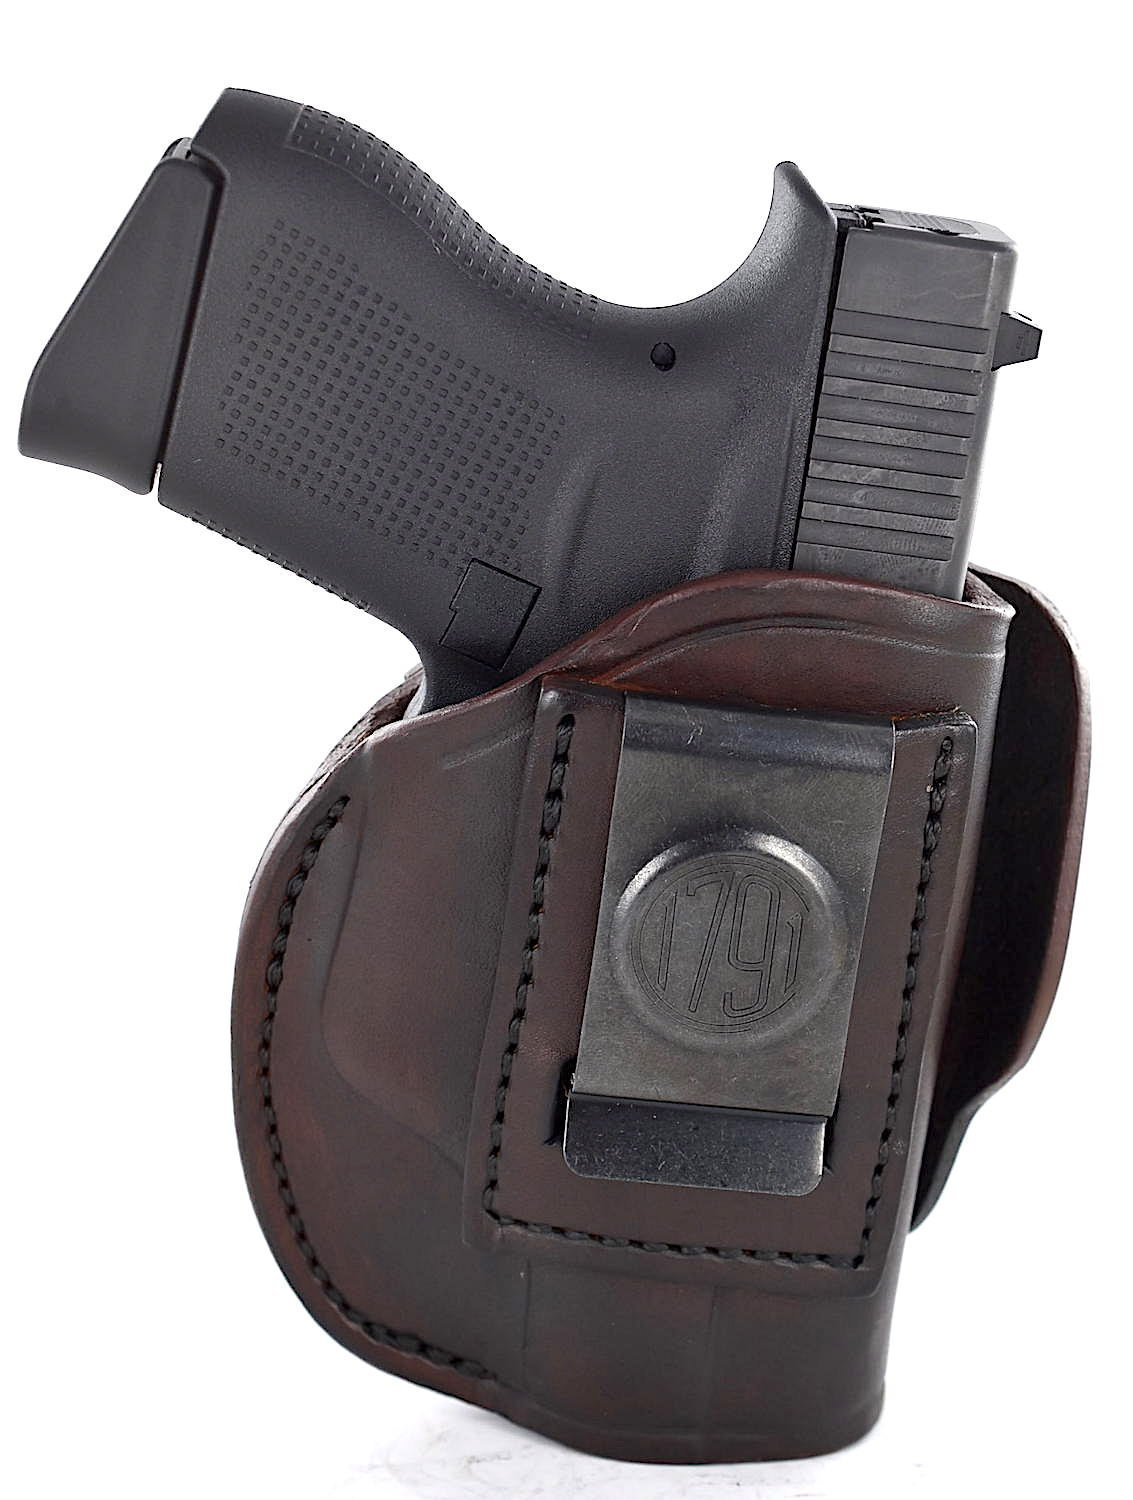 Buy LEATHER THREE SLOT PANCAKE HOLSTER (OWB) WITH THUMB